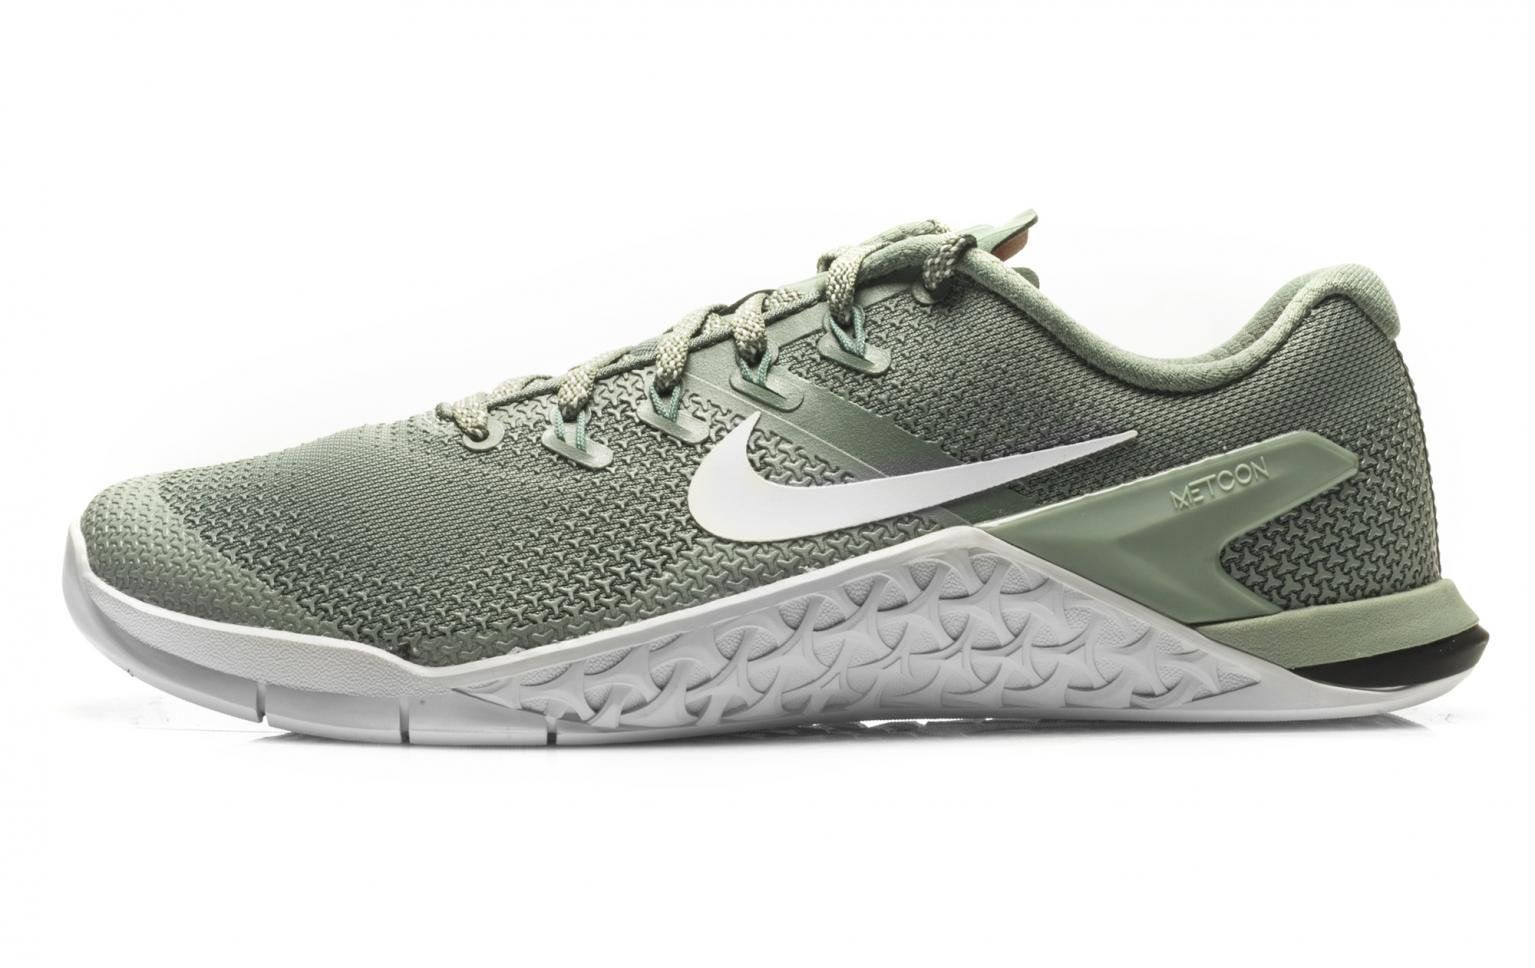 Ewell articulo Propio  Nike Metcon 4 - Men's - Clay Green / White-Mica Green | Rogue Fitness | Nike  metcon, Crossfit shoes, Cross training shoes